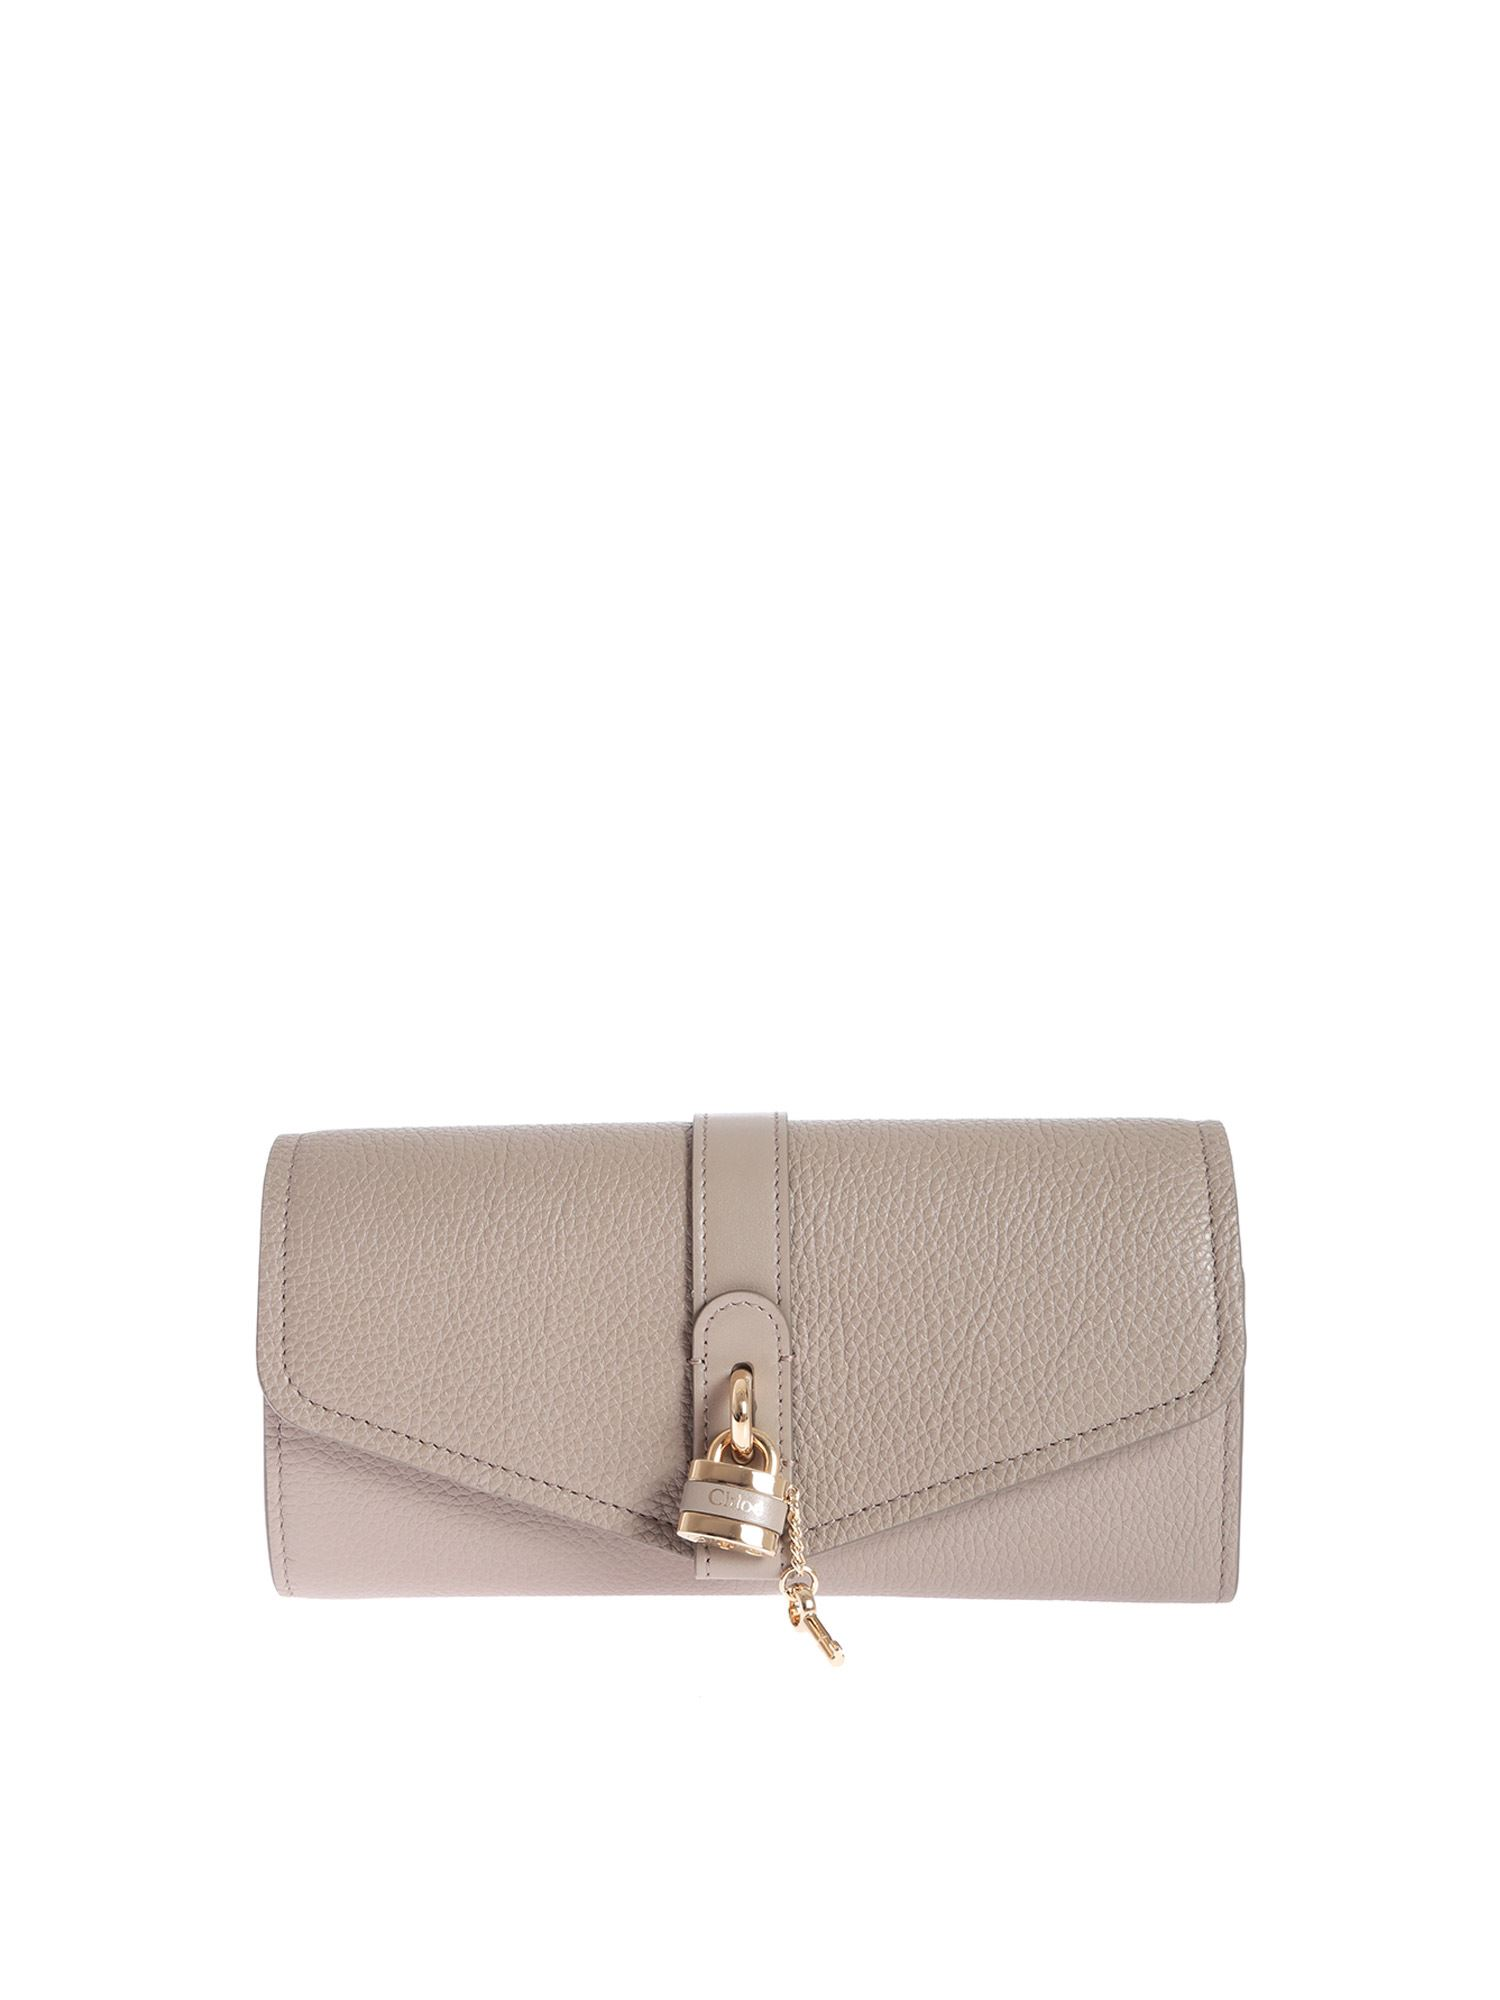 Chloé Wallets ABY CONTINENTAL WALLET IN GREY